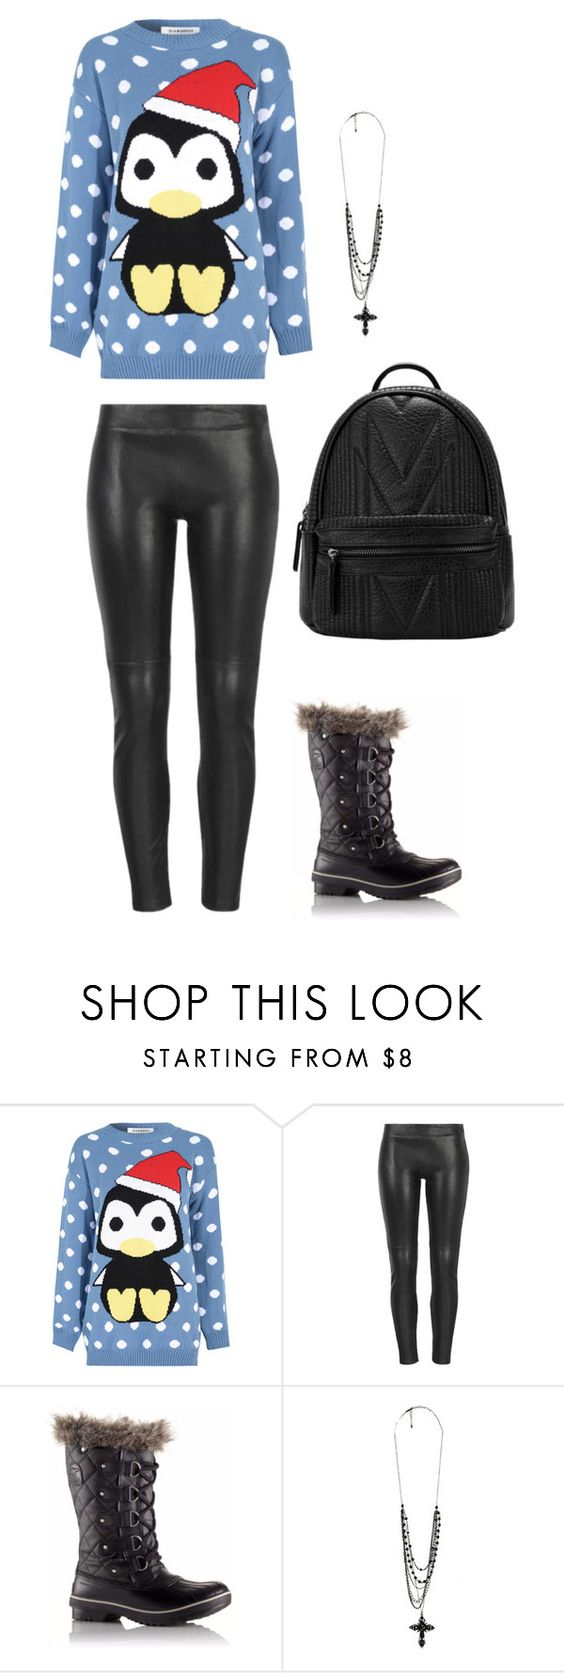 """Edgy Christmas"" by agdancer10 ❤ liked on Polyvore featuring Glamorous, MuuBaa, SOREL and Forever 21"